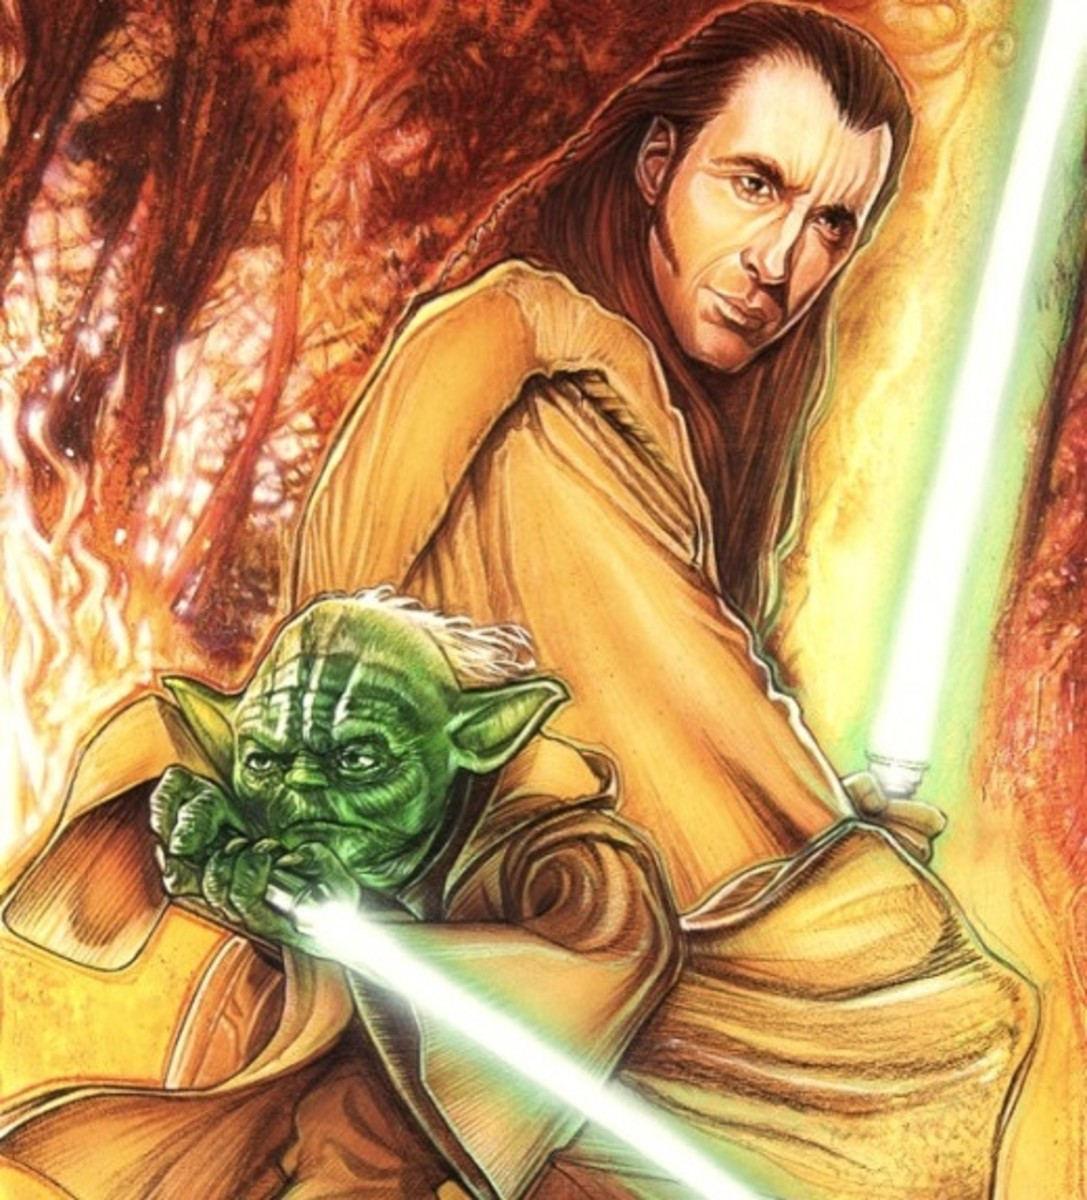 Yoda with young Count Dooku